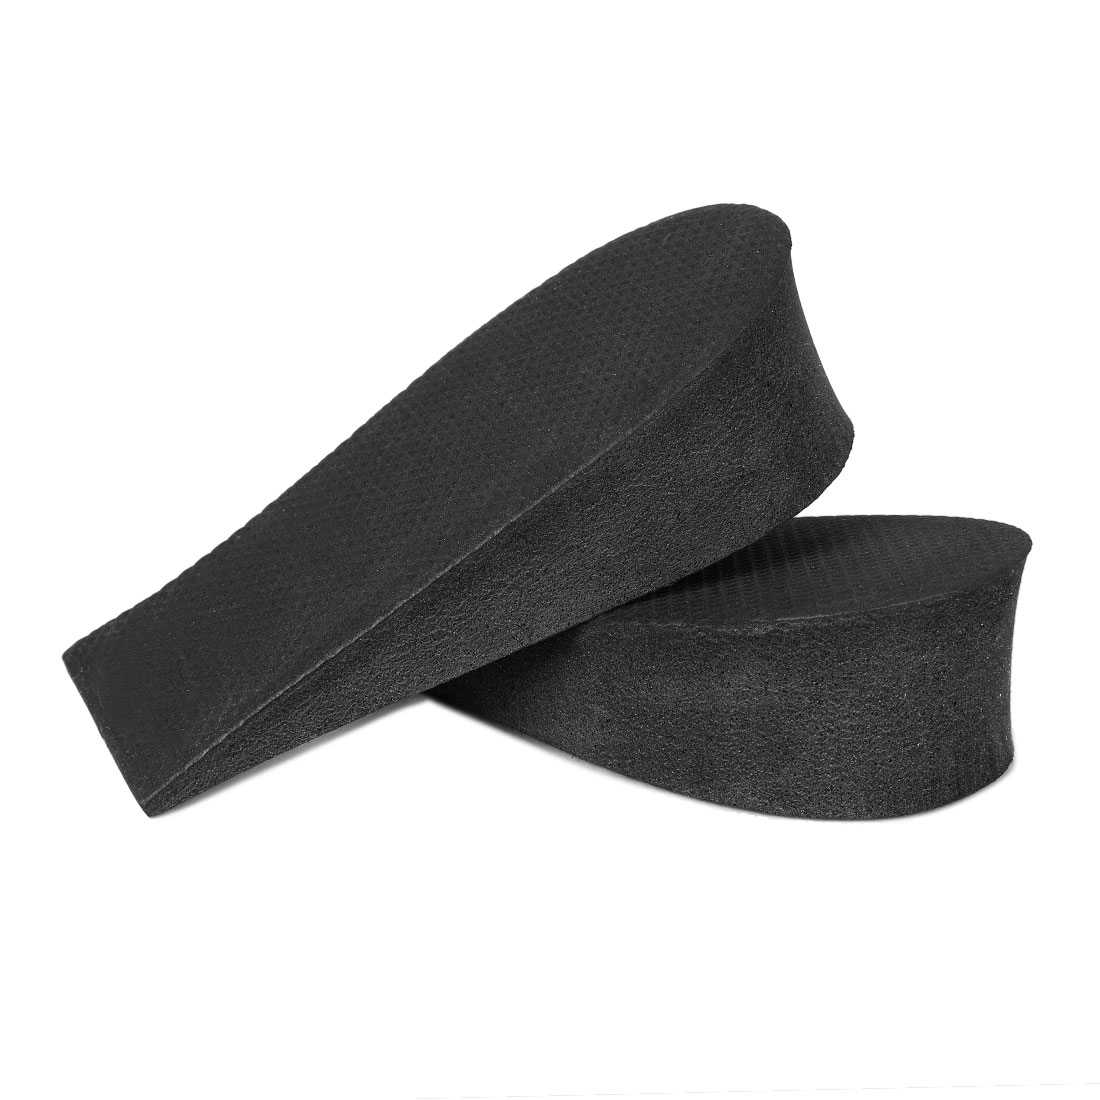 "2 Pcs 1.5"" Height Increase Heel Lifts Foam Pads Insoles Black"